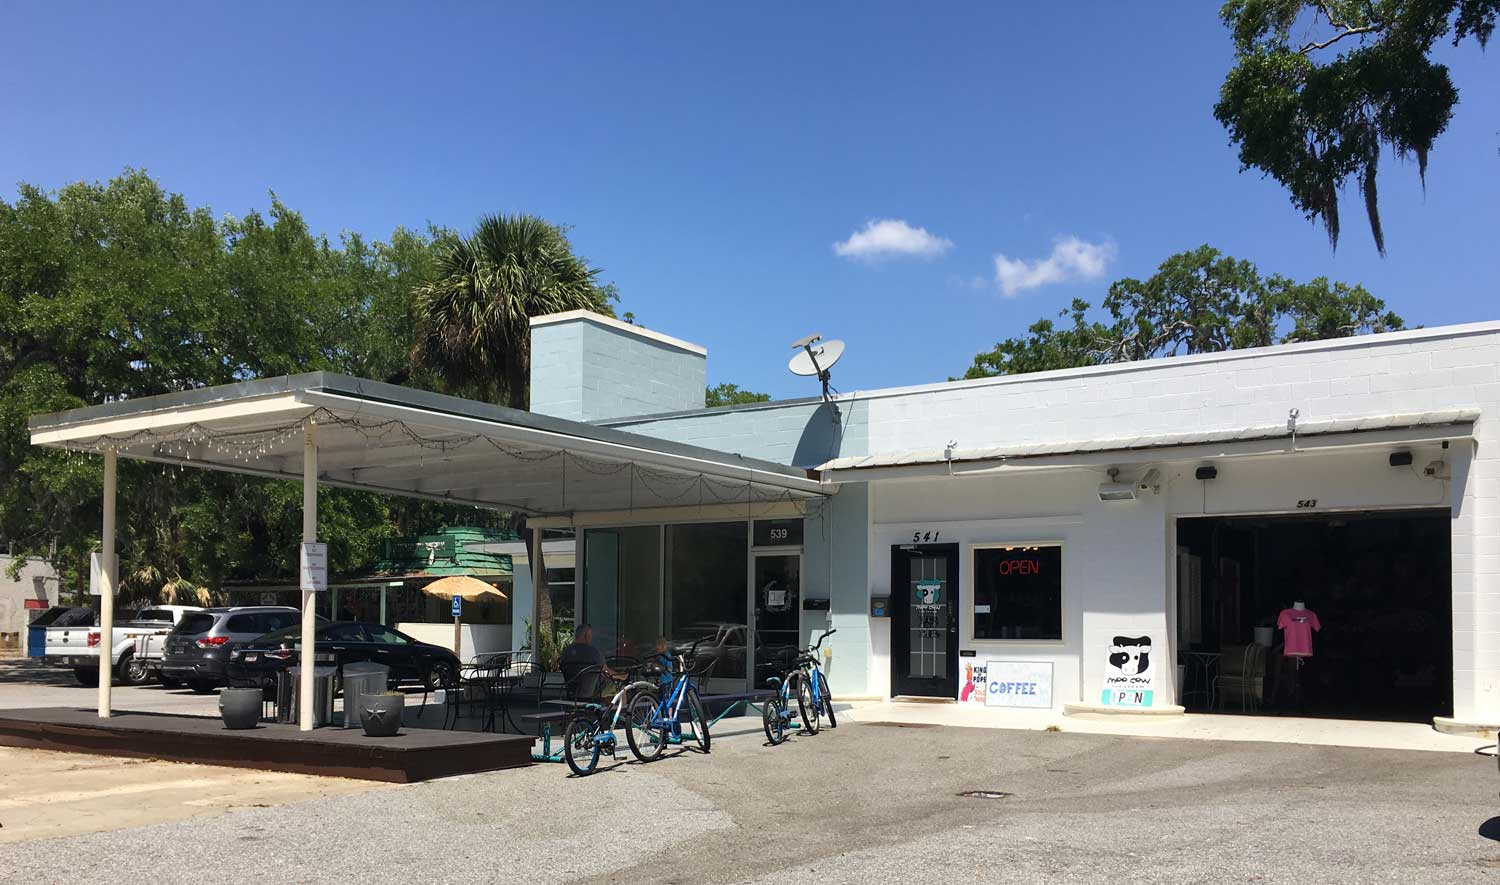 The perfect stop while exploring St Simons Island on tandem bikes is Moo Cow Ice Cream.